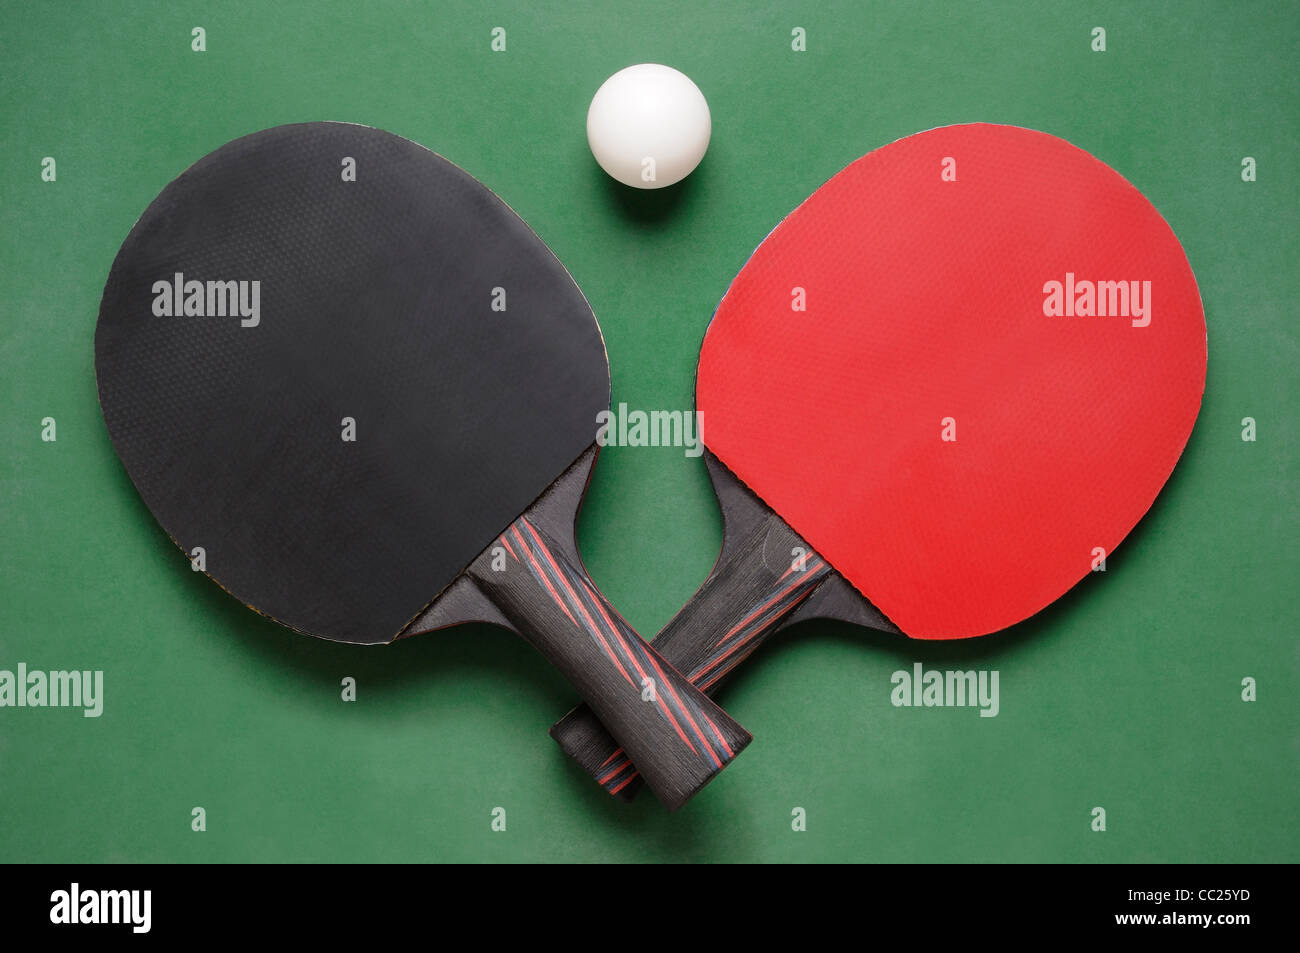 Table Tennis Bats - Stock Image